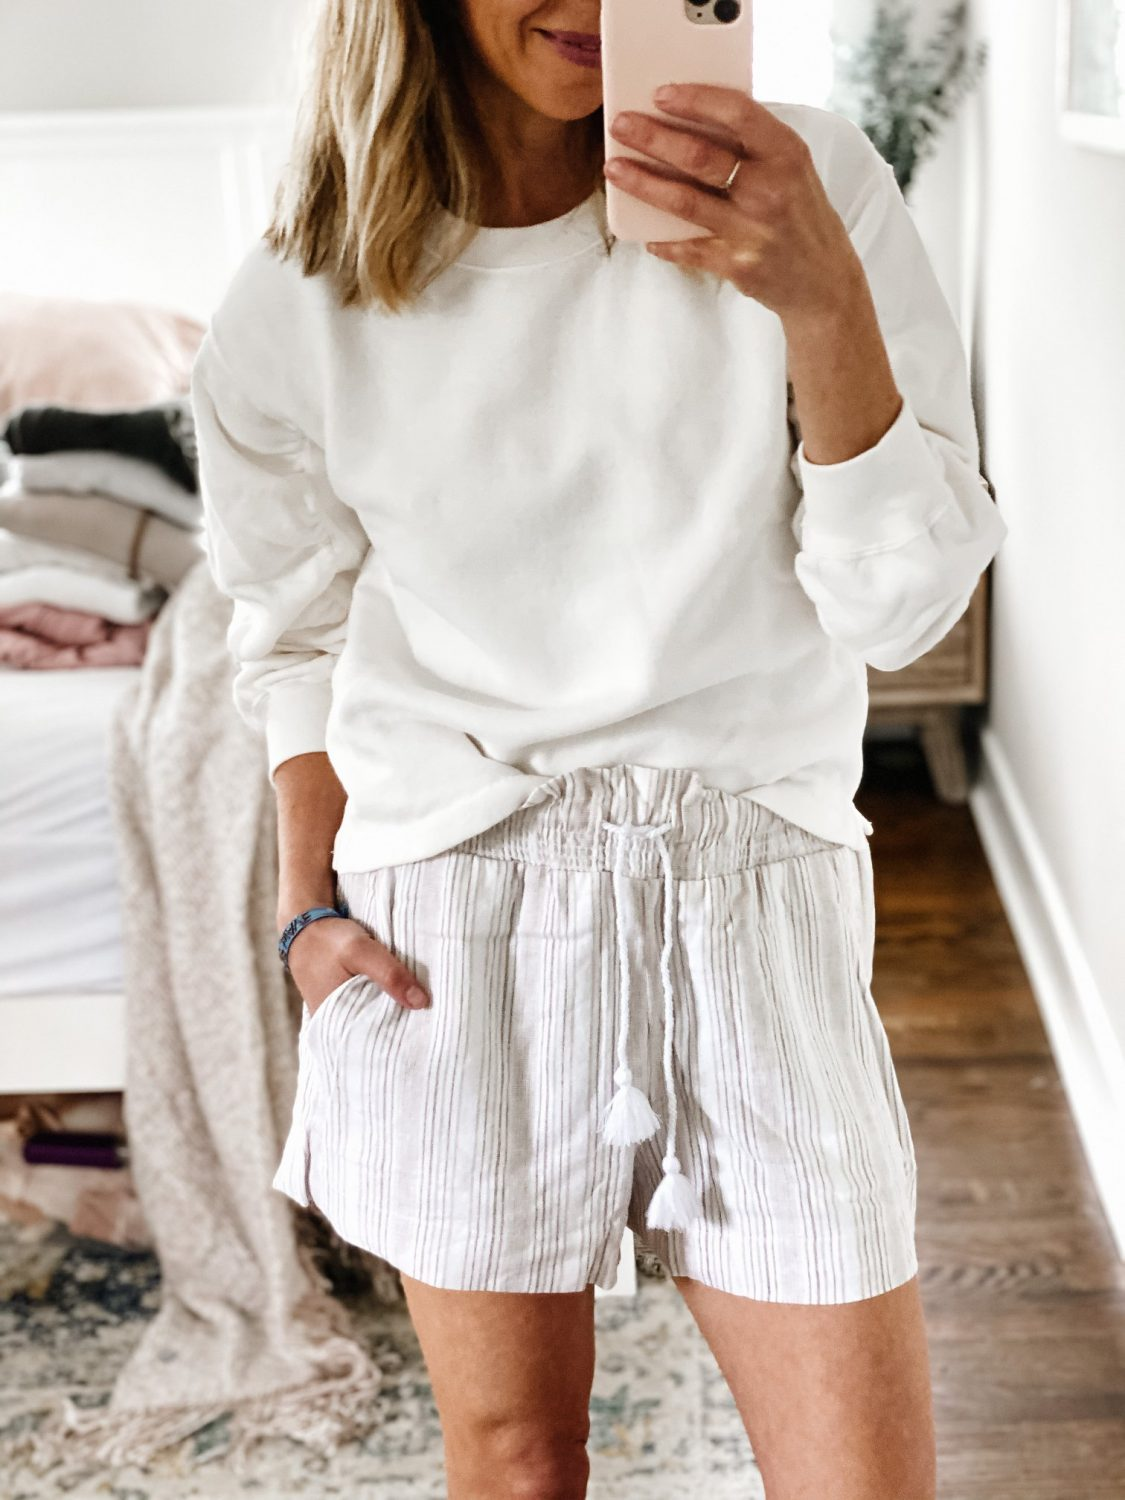 the motherchic wearing abercrombrie shorts and sweatshirt